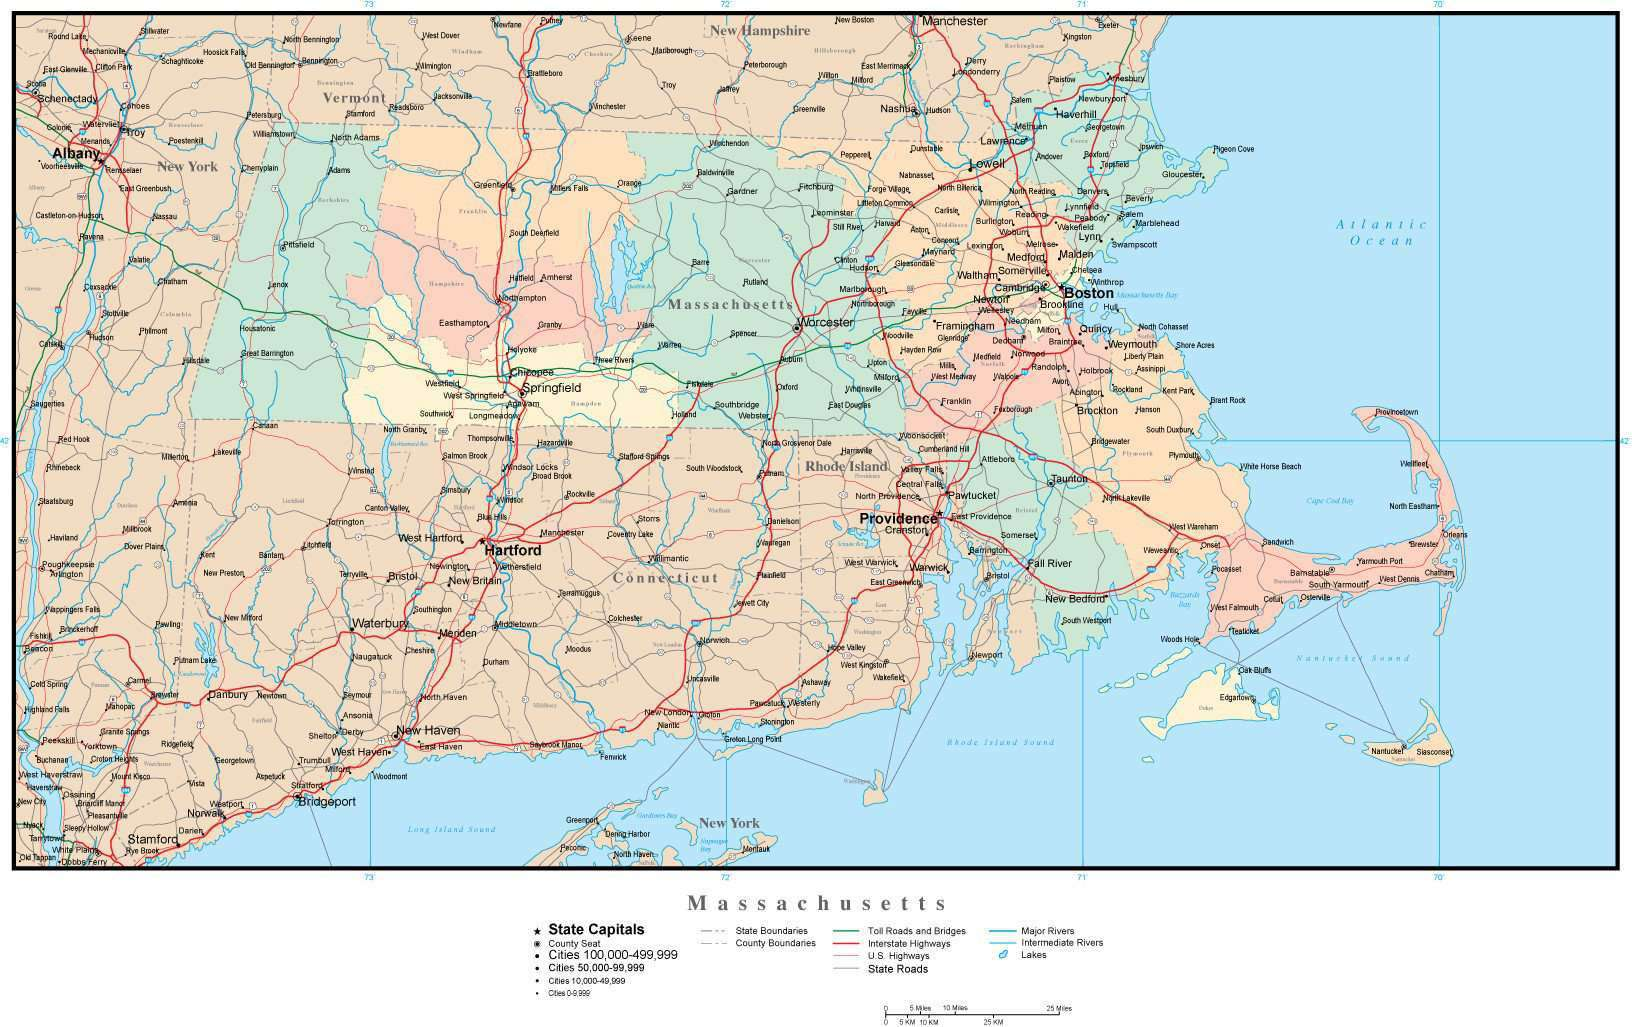 Massachusetts Map with Counties, Cities, County Seats, Major Roads, Rivers  and Lakes